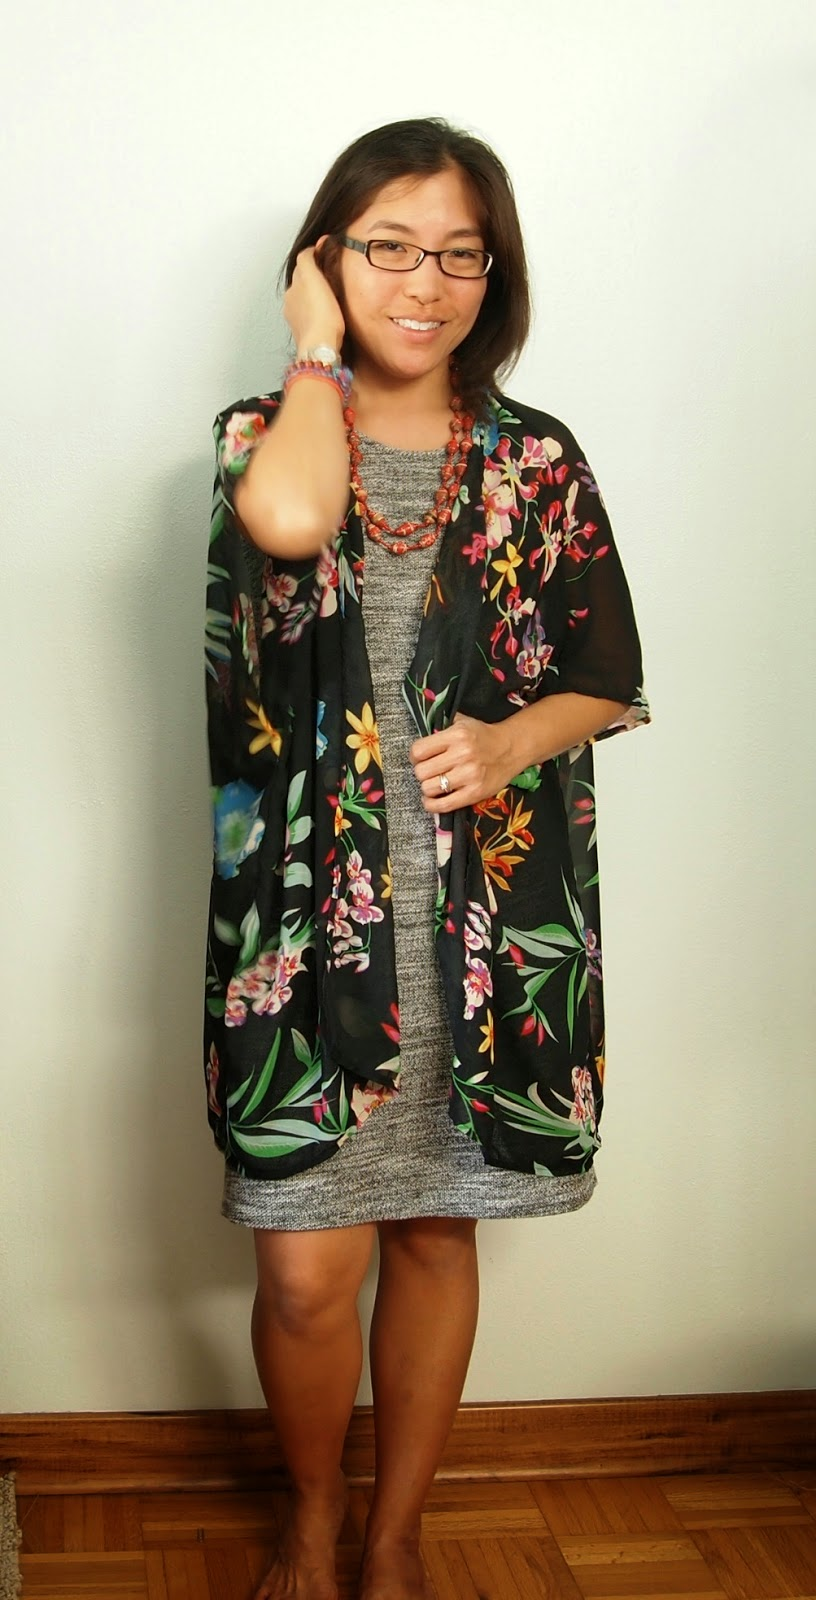 gray fleece dress black floral kimono top red beads Haitian Beads teacher style teacher outfit